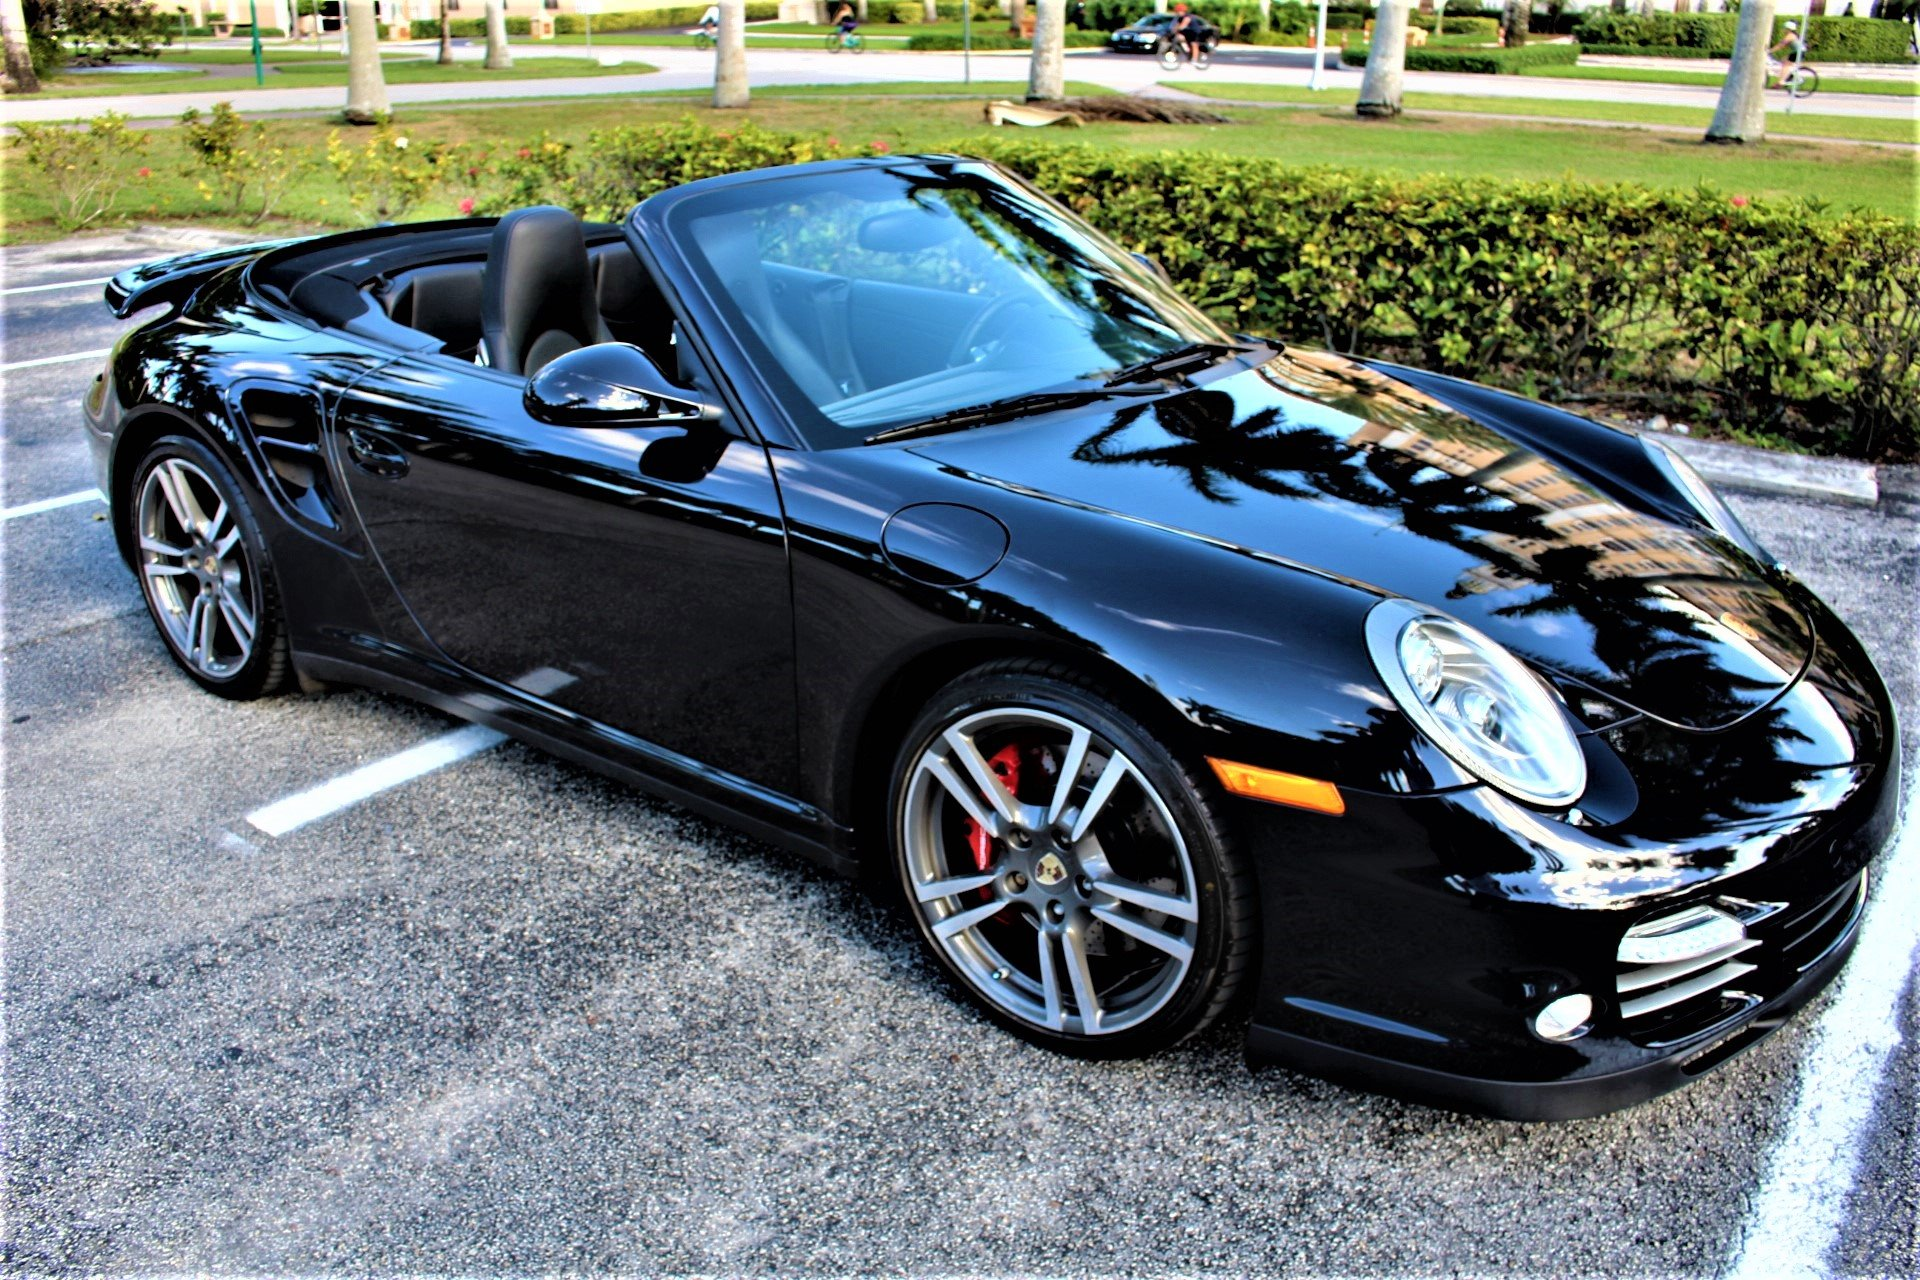 Used 2010 Porsche 911 Turbo for sale Sold at The Gables Sports Cars in Miami FL 33146 2